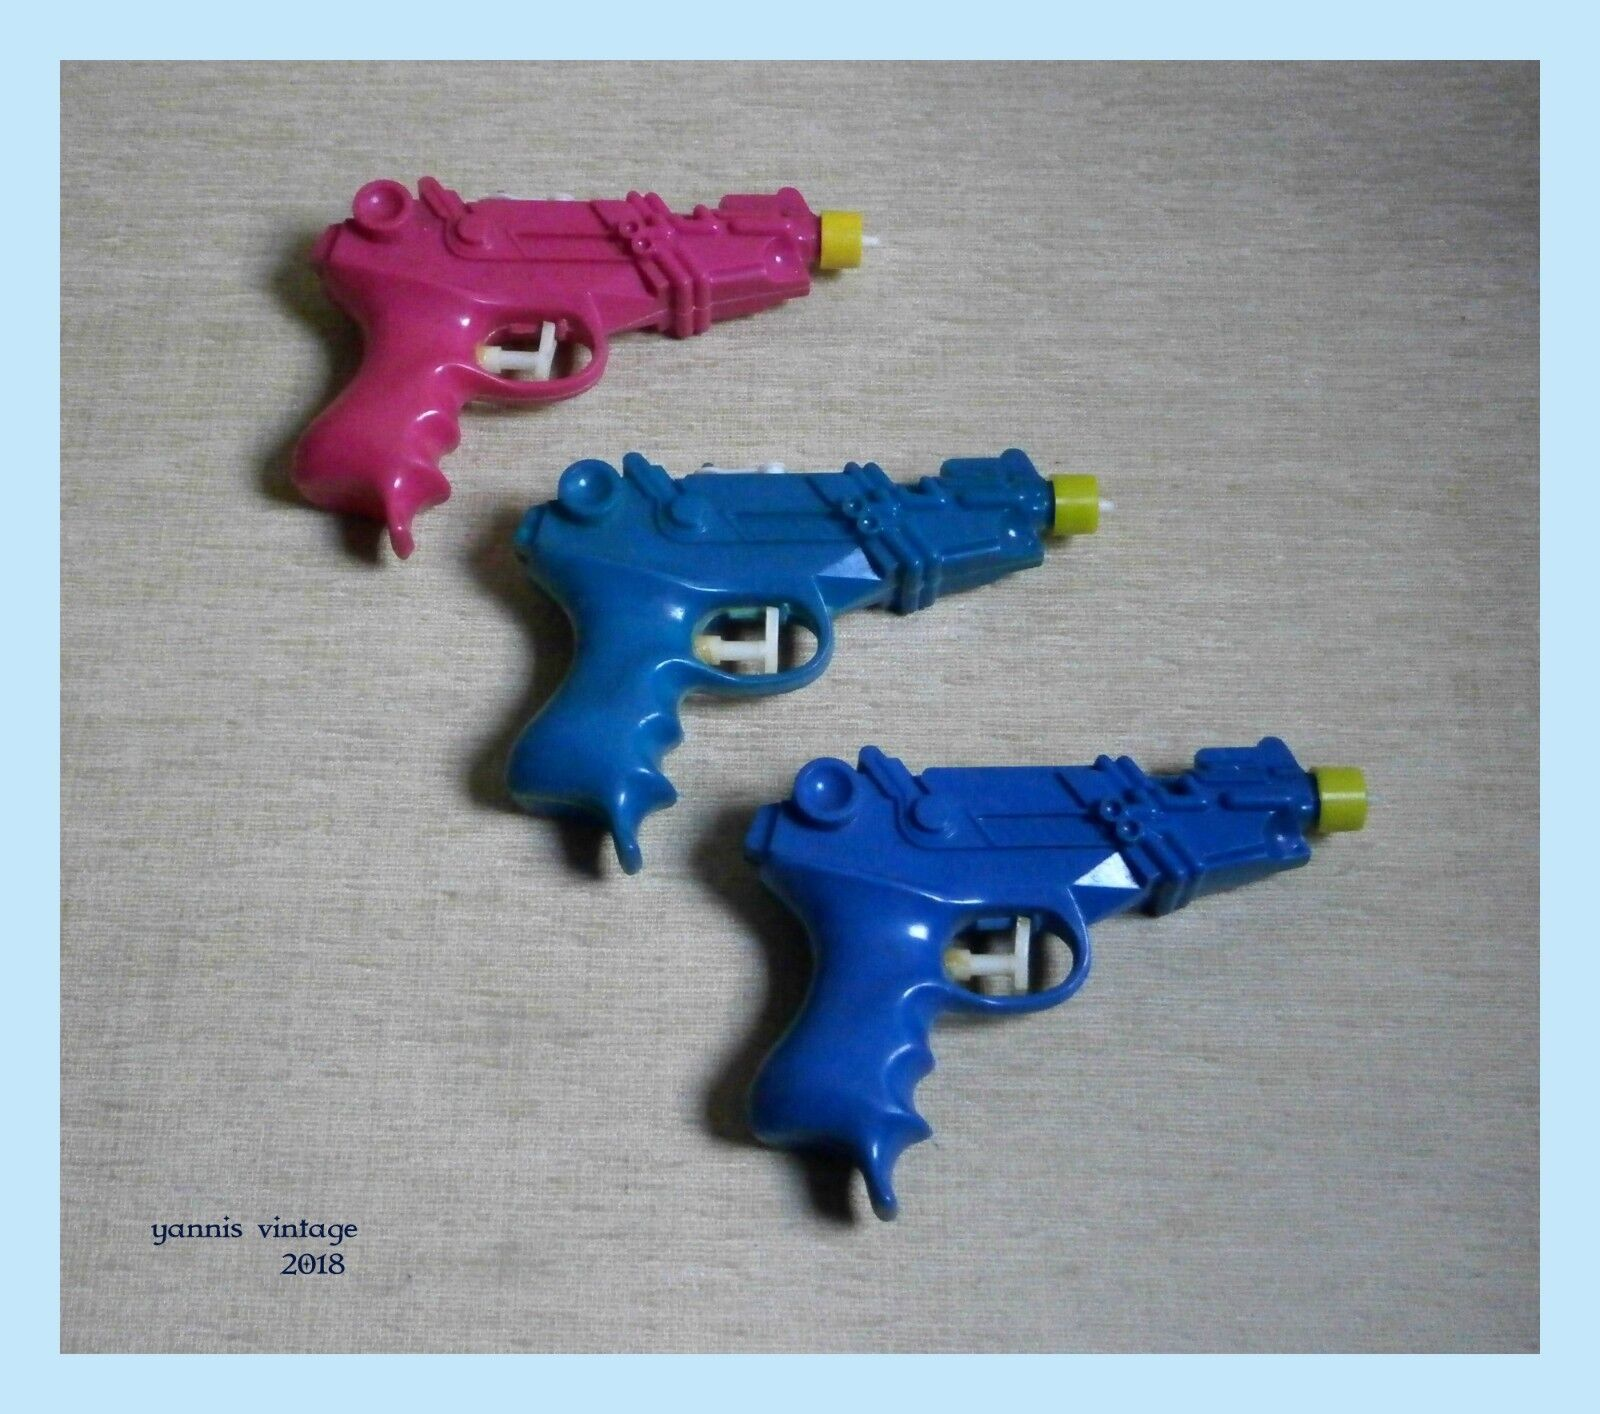 JET PISTOL - K5 SPACE WATER TOY GUN LOTX3 New GREECE BIOTSIOT GREEK PLASTIC RARE